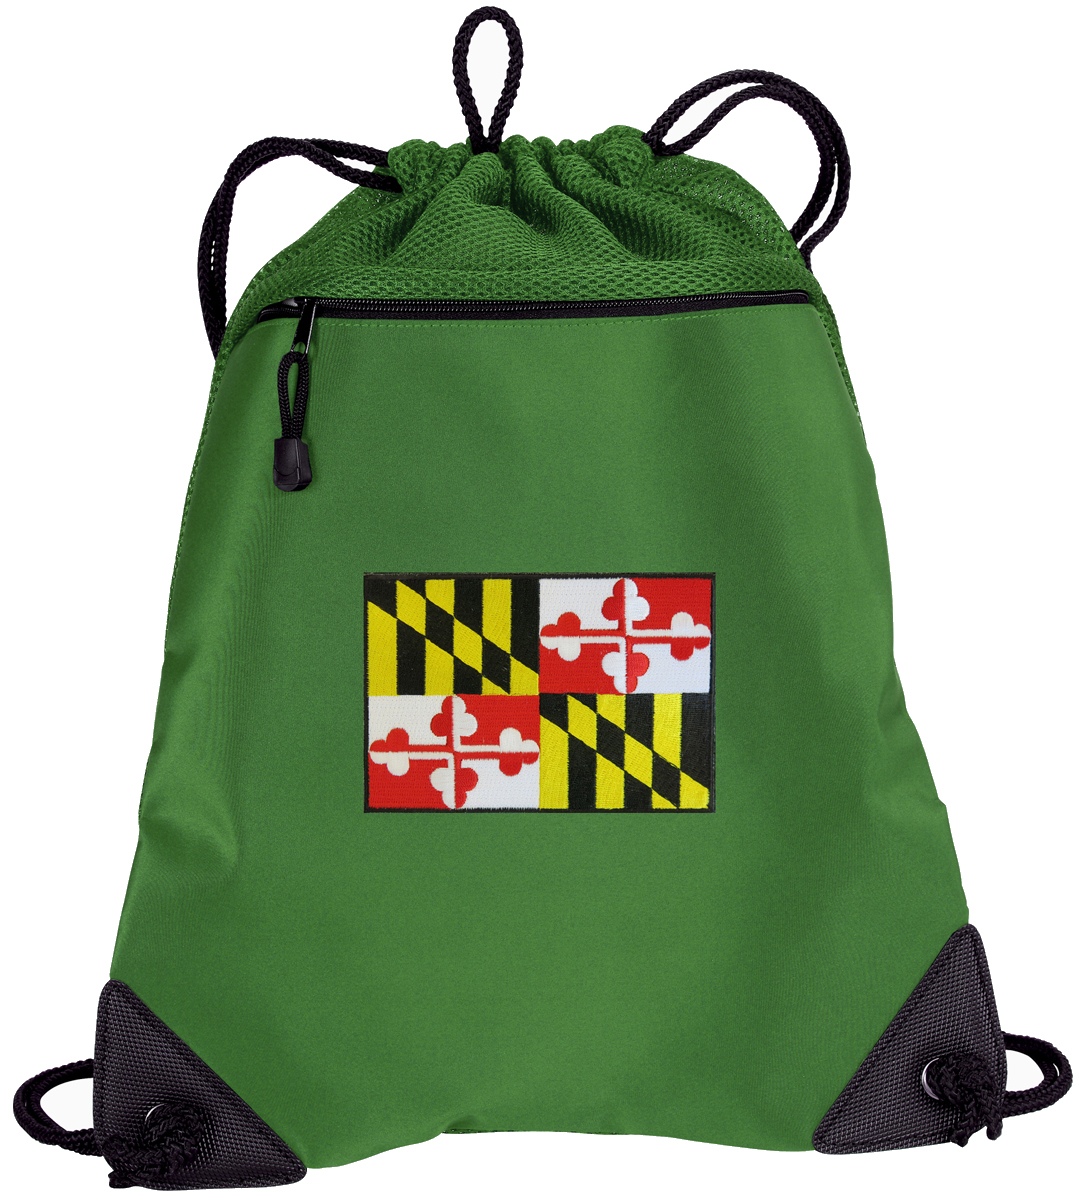 Maryland Flag Drawstring Bags Maryland Cinch Backpacks - Unique Mesh & Microfiber